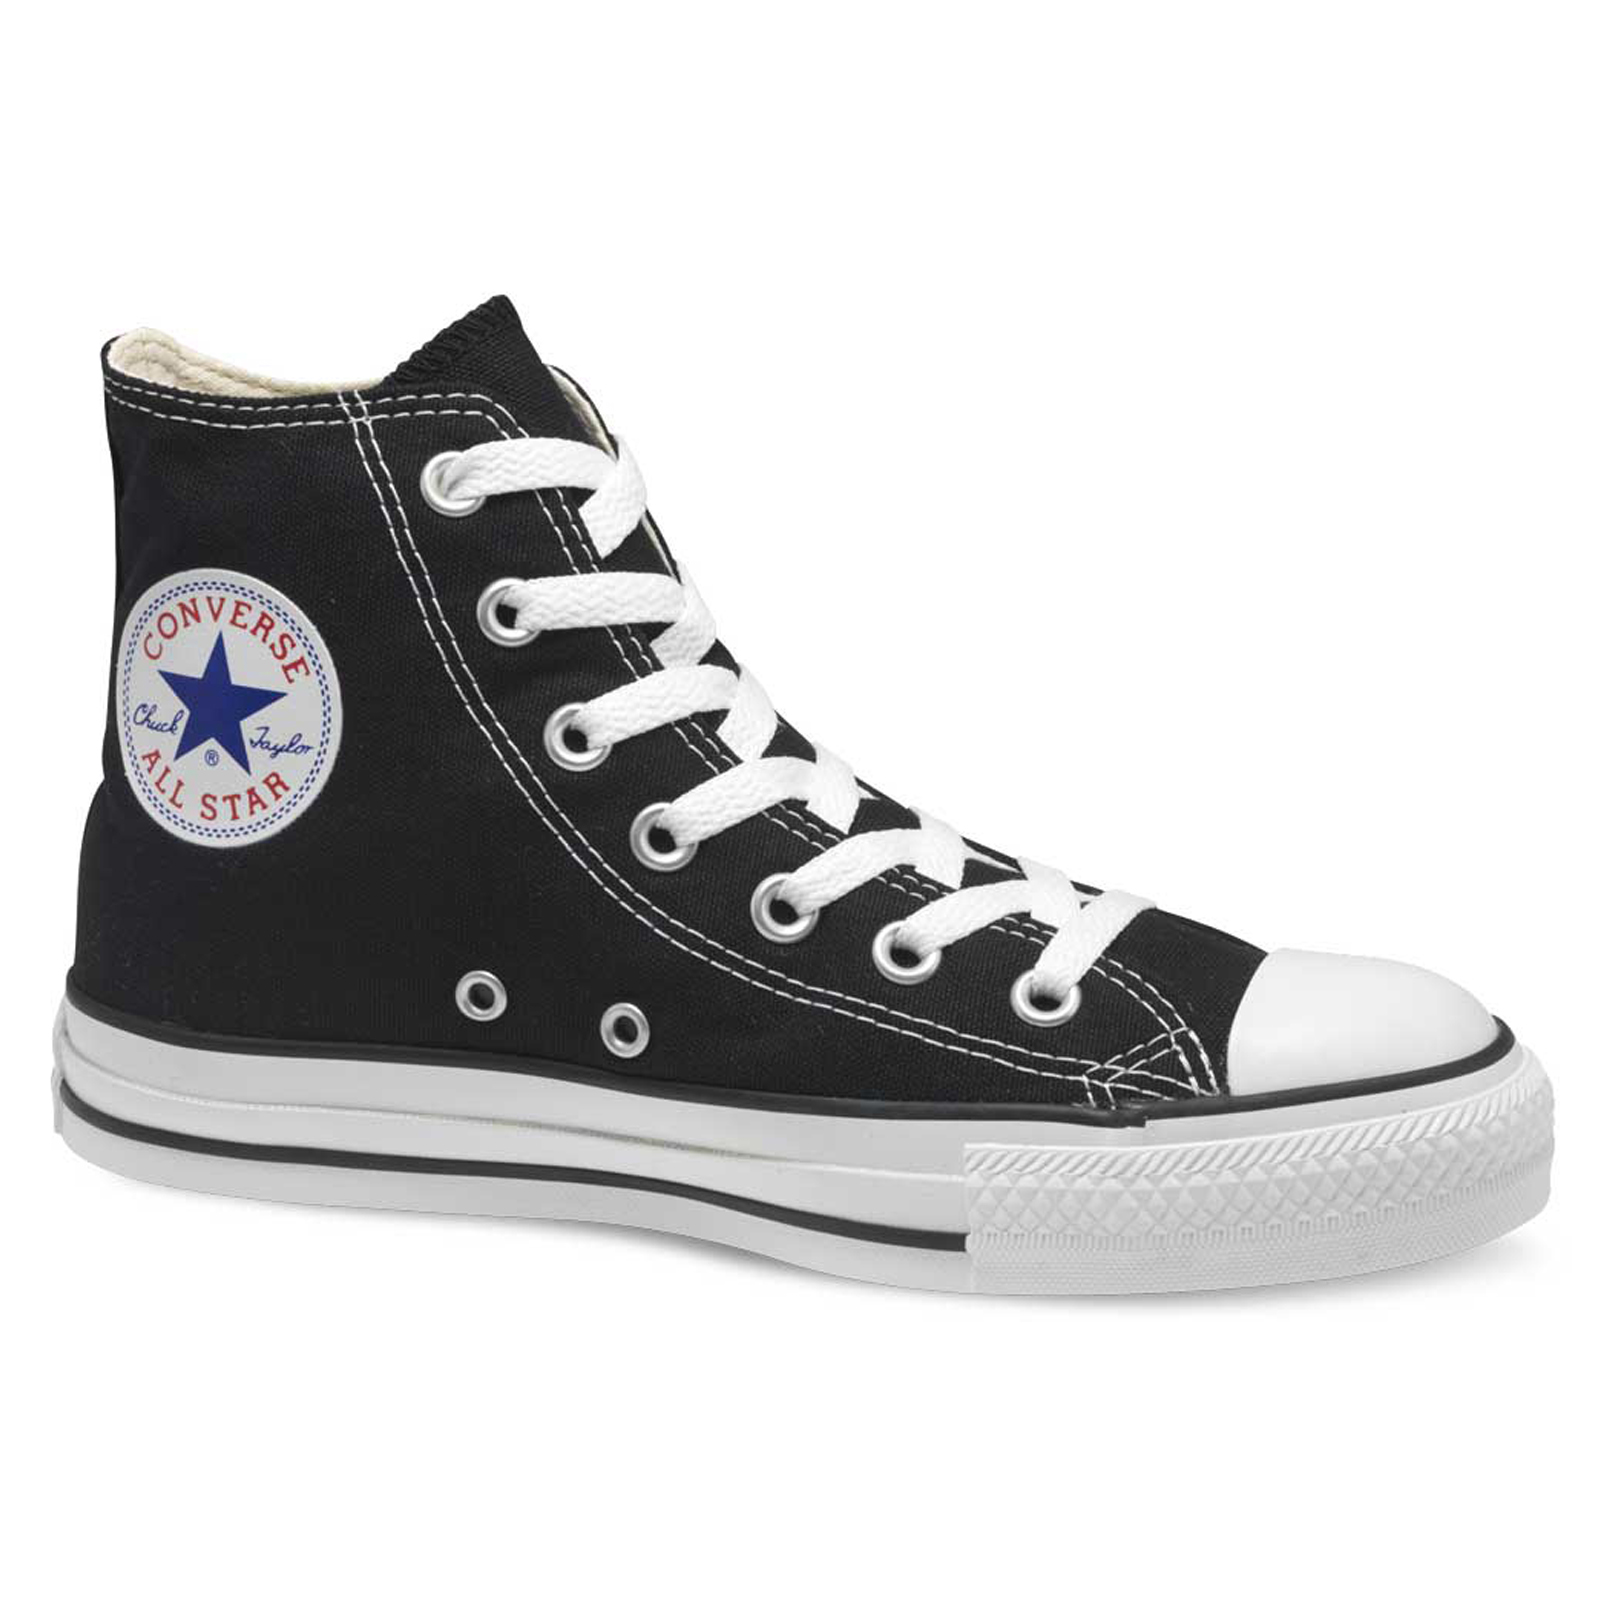 Converse Chuck Taylor All Star Hi Top Black m9160 at Sears.com